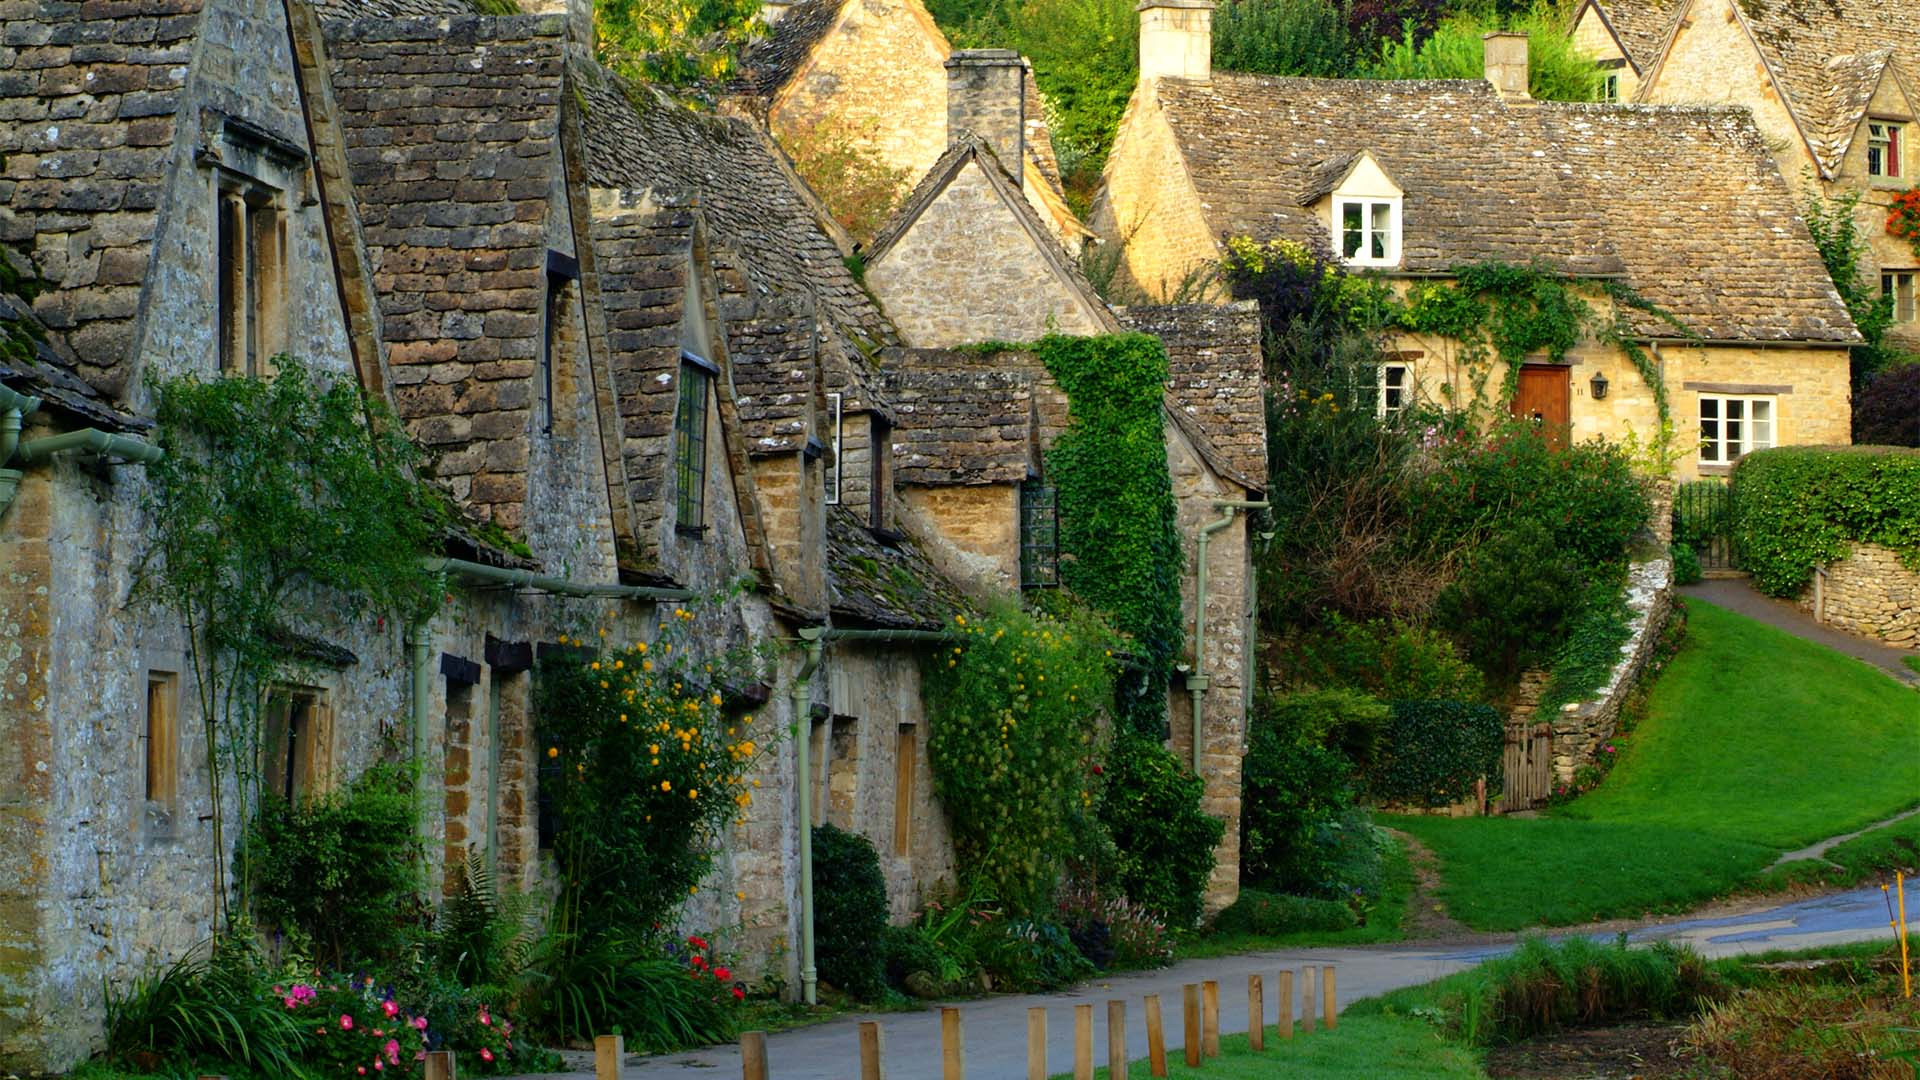 Arilington Row, Bibury, a village near Cirencester in the Cotswolds